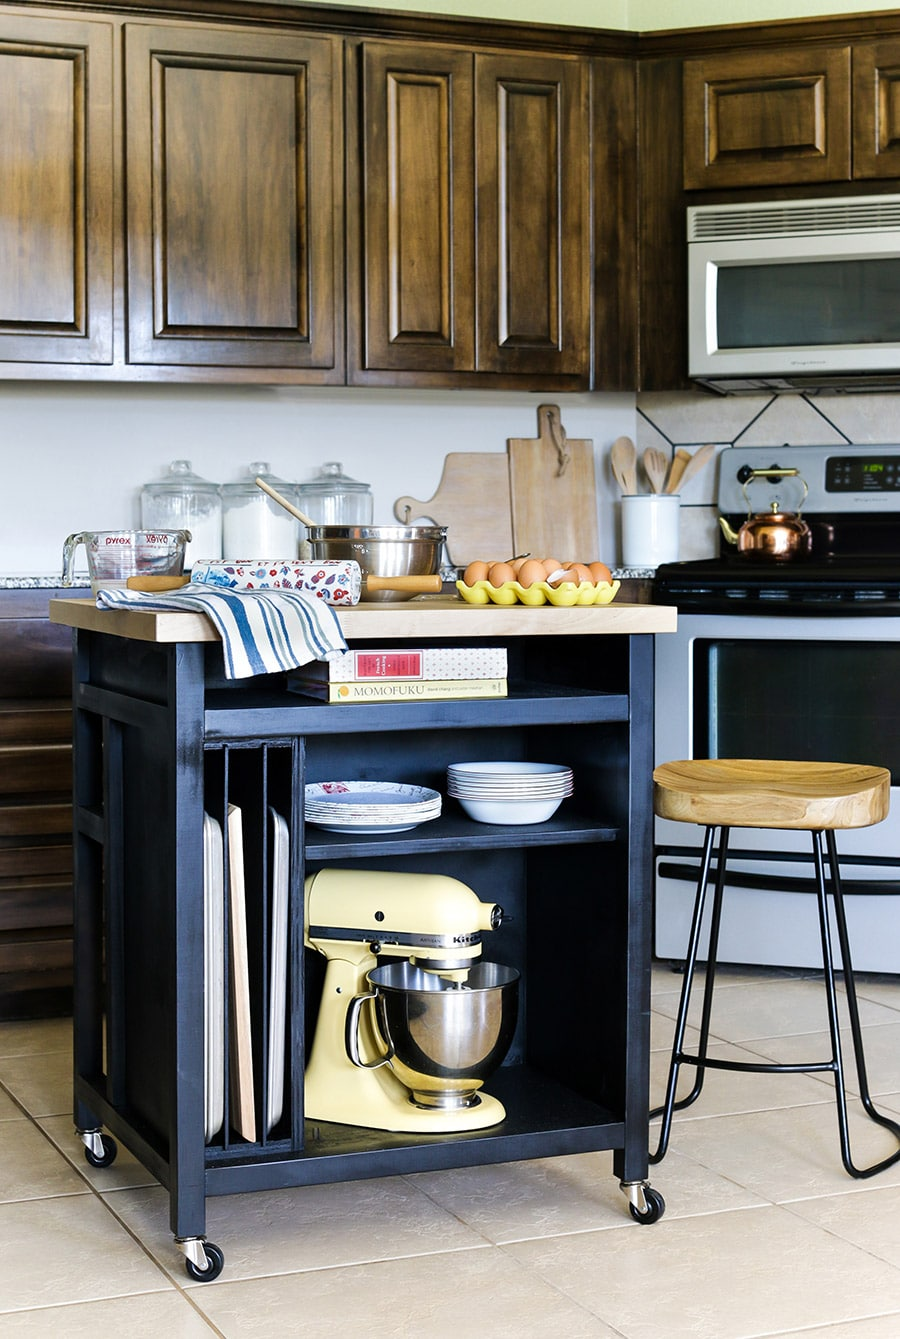 How to build a DIY kitchen island on wheels